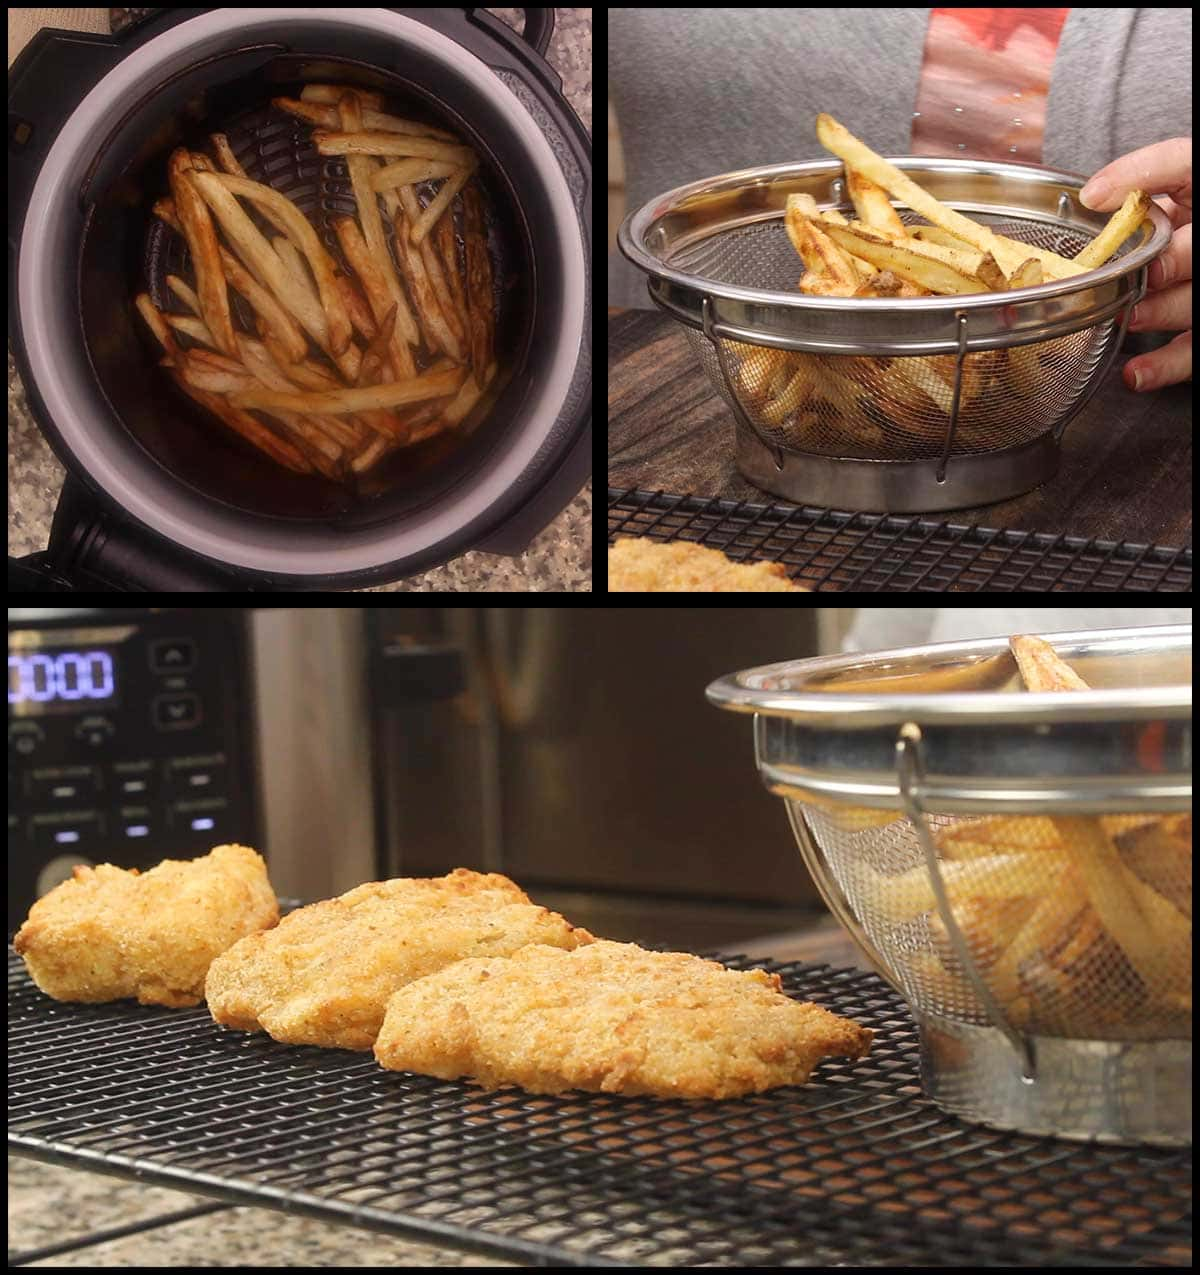 removing fries and putting into a basket